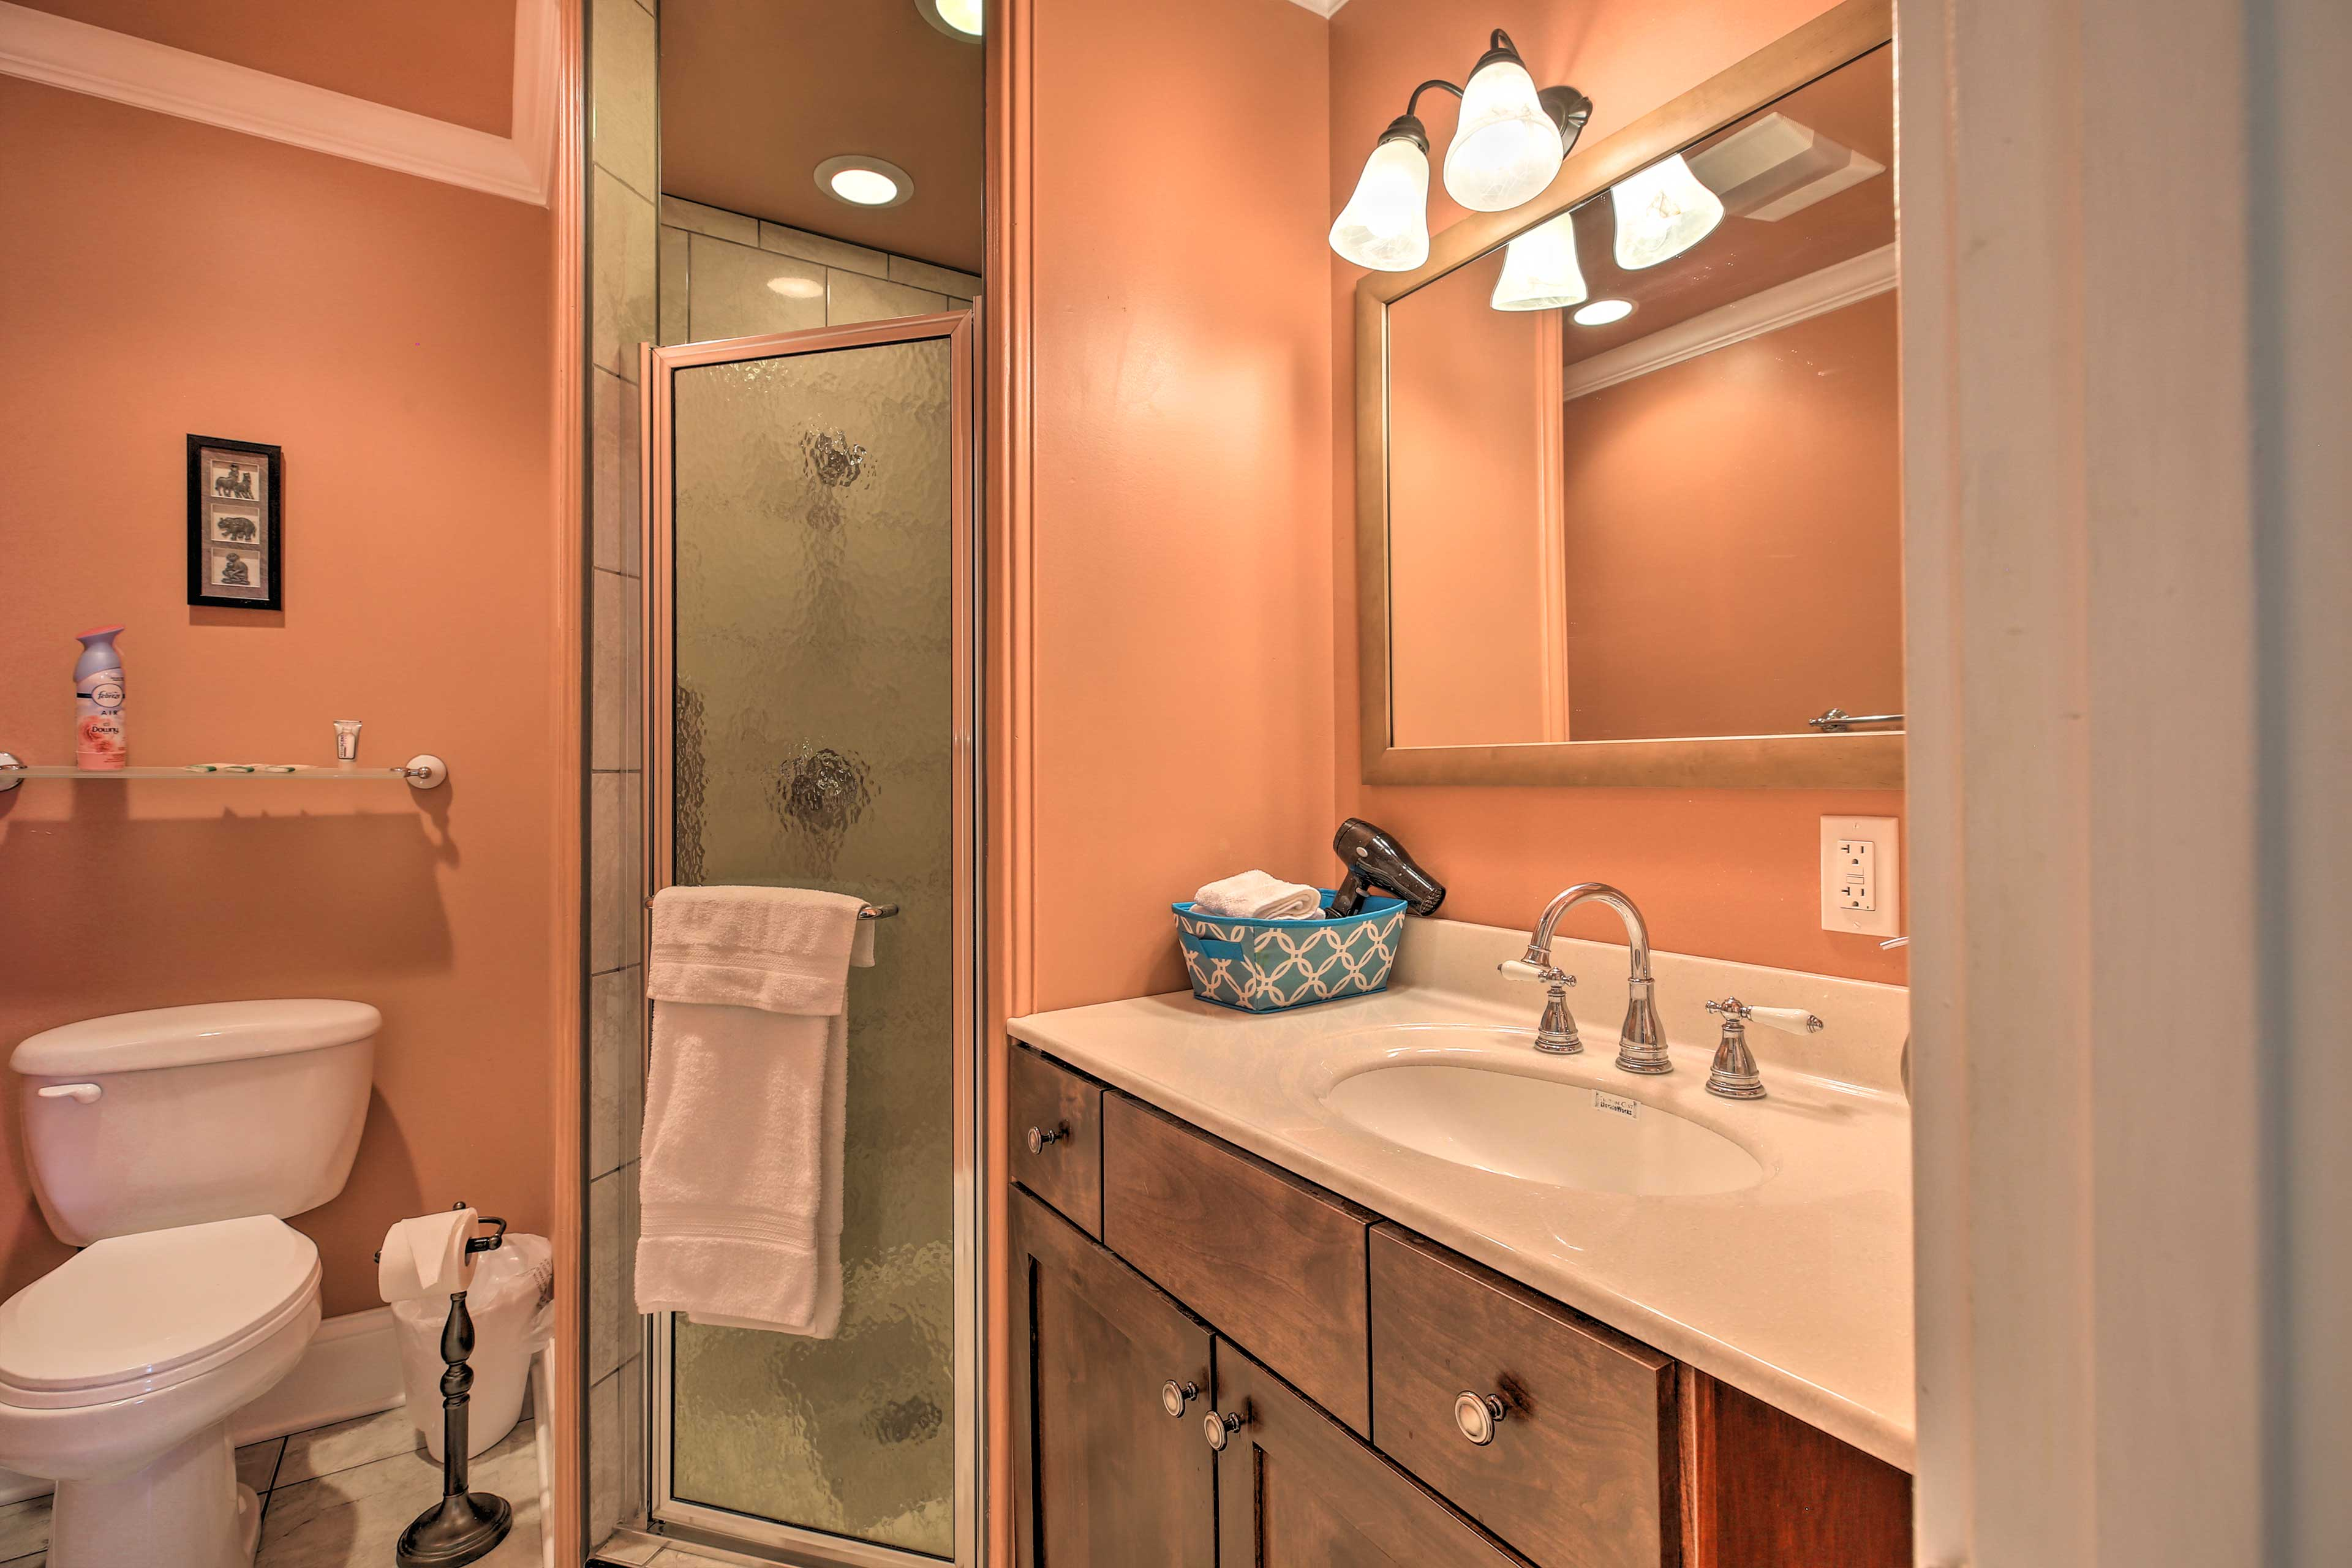 Get ready for the day in the full bathroom.